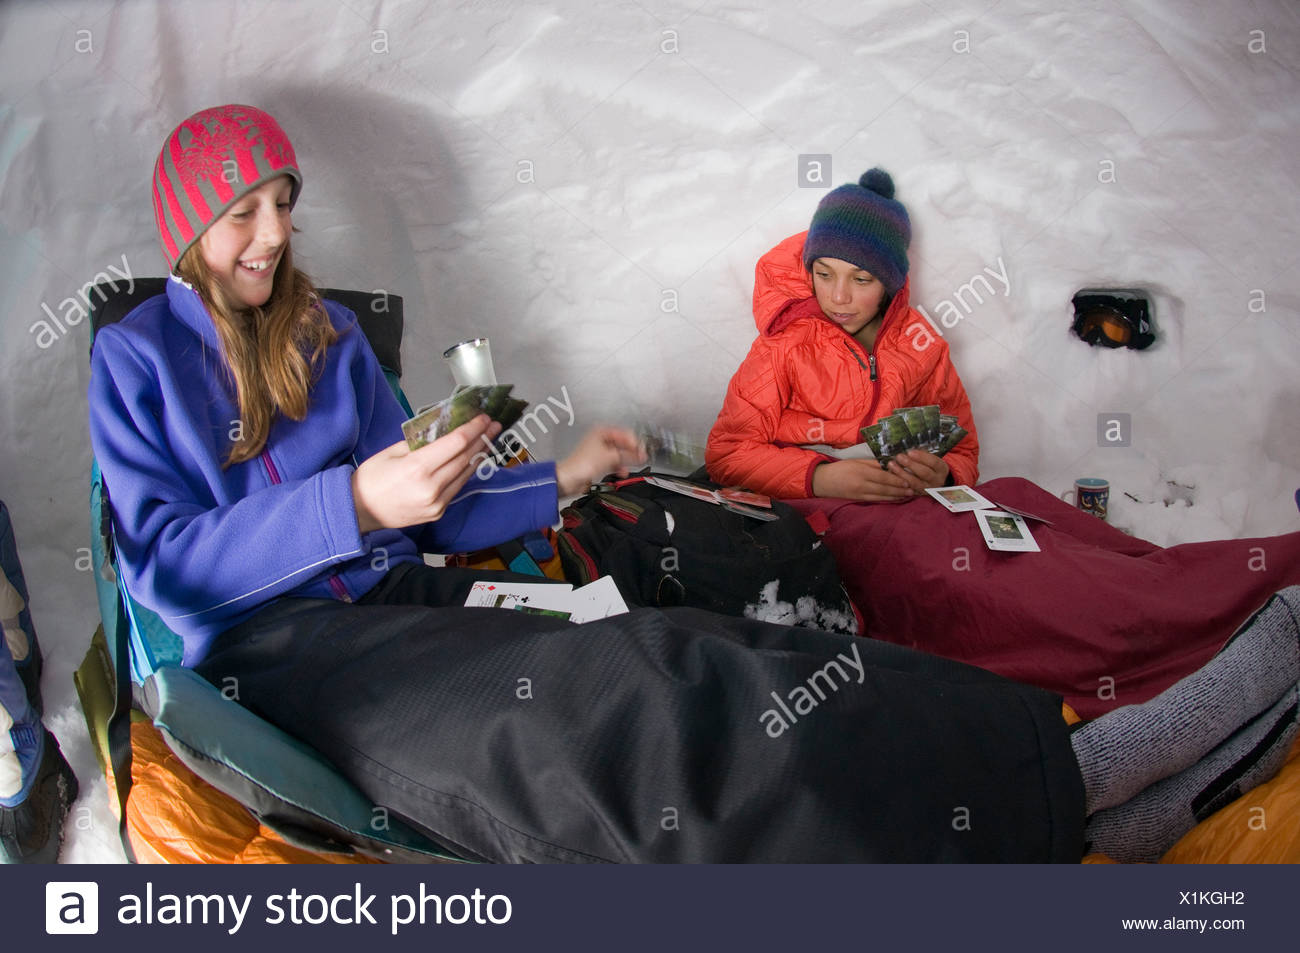 Boy and girl playing cards in snow cave, Silverton, Colorado. - Stock Image